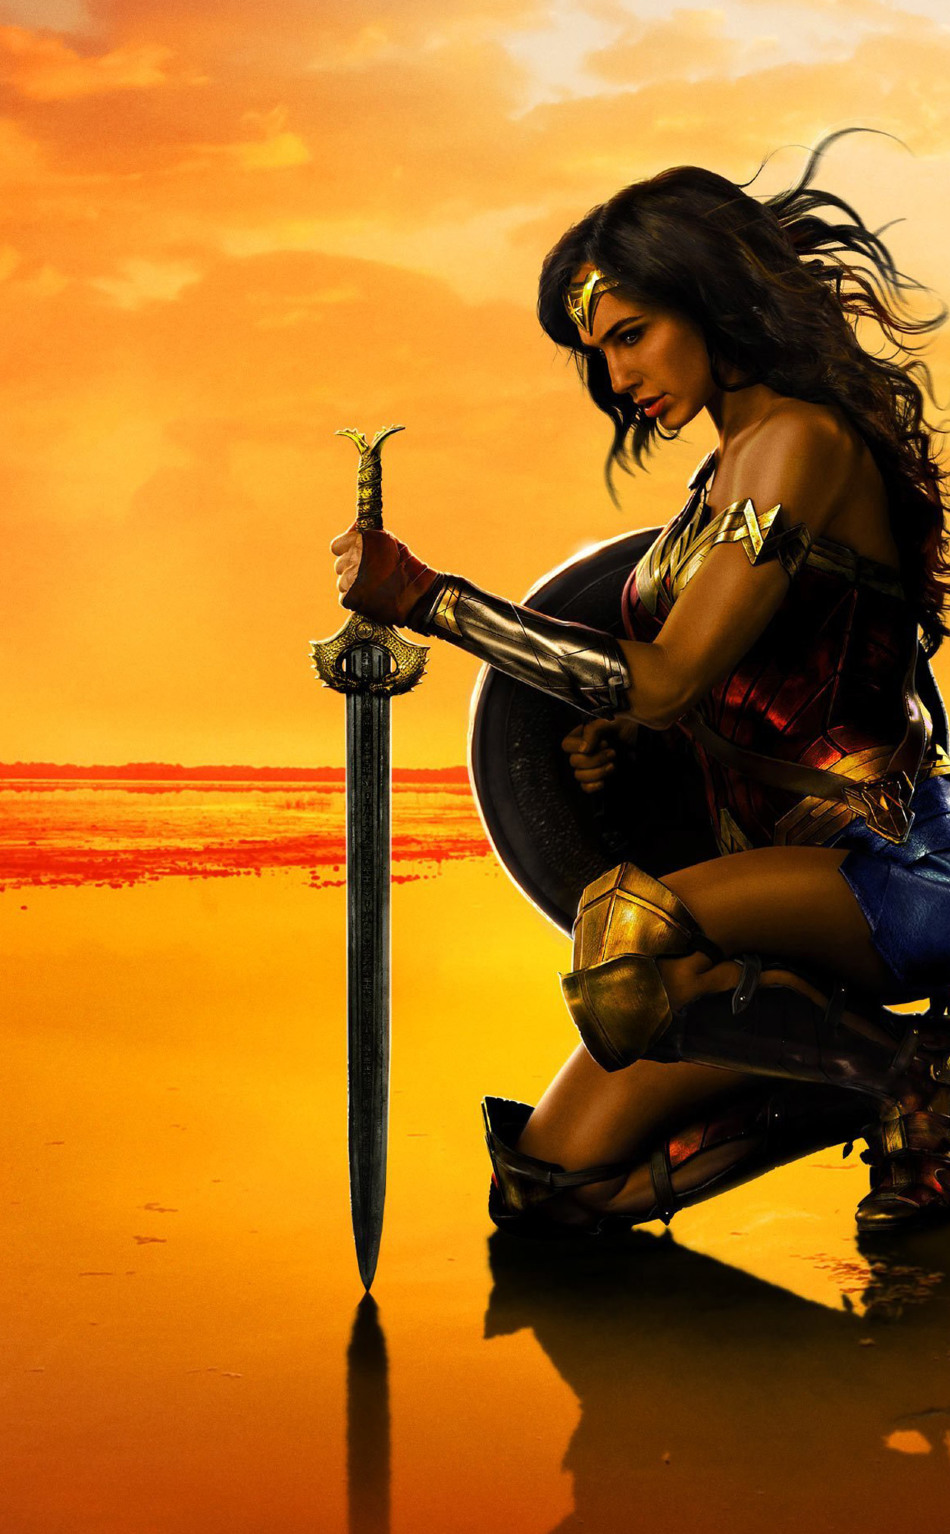 Wonder Woman Movie Poster HD 4K Wallpaper